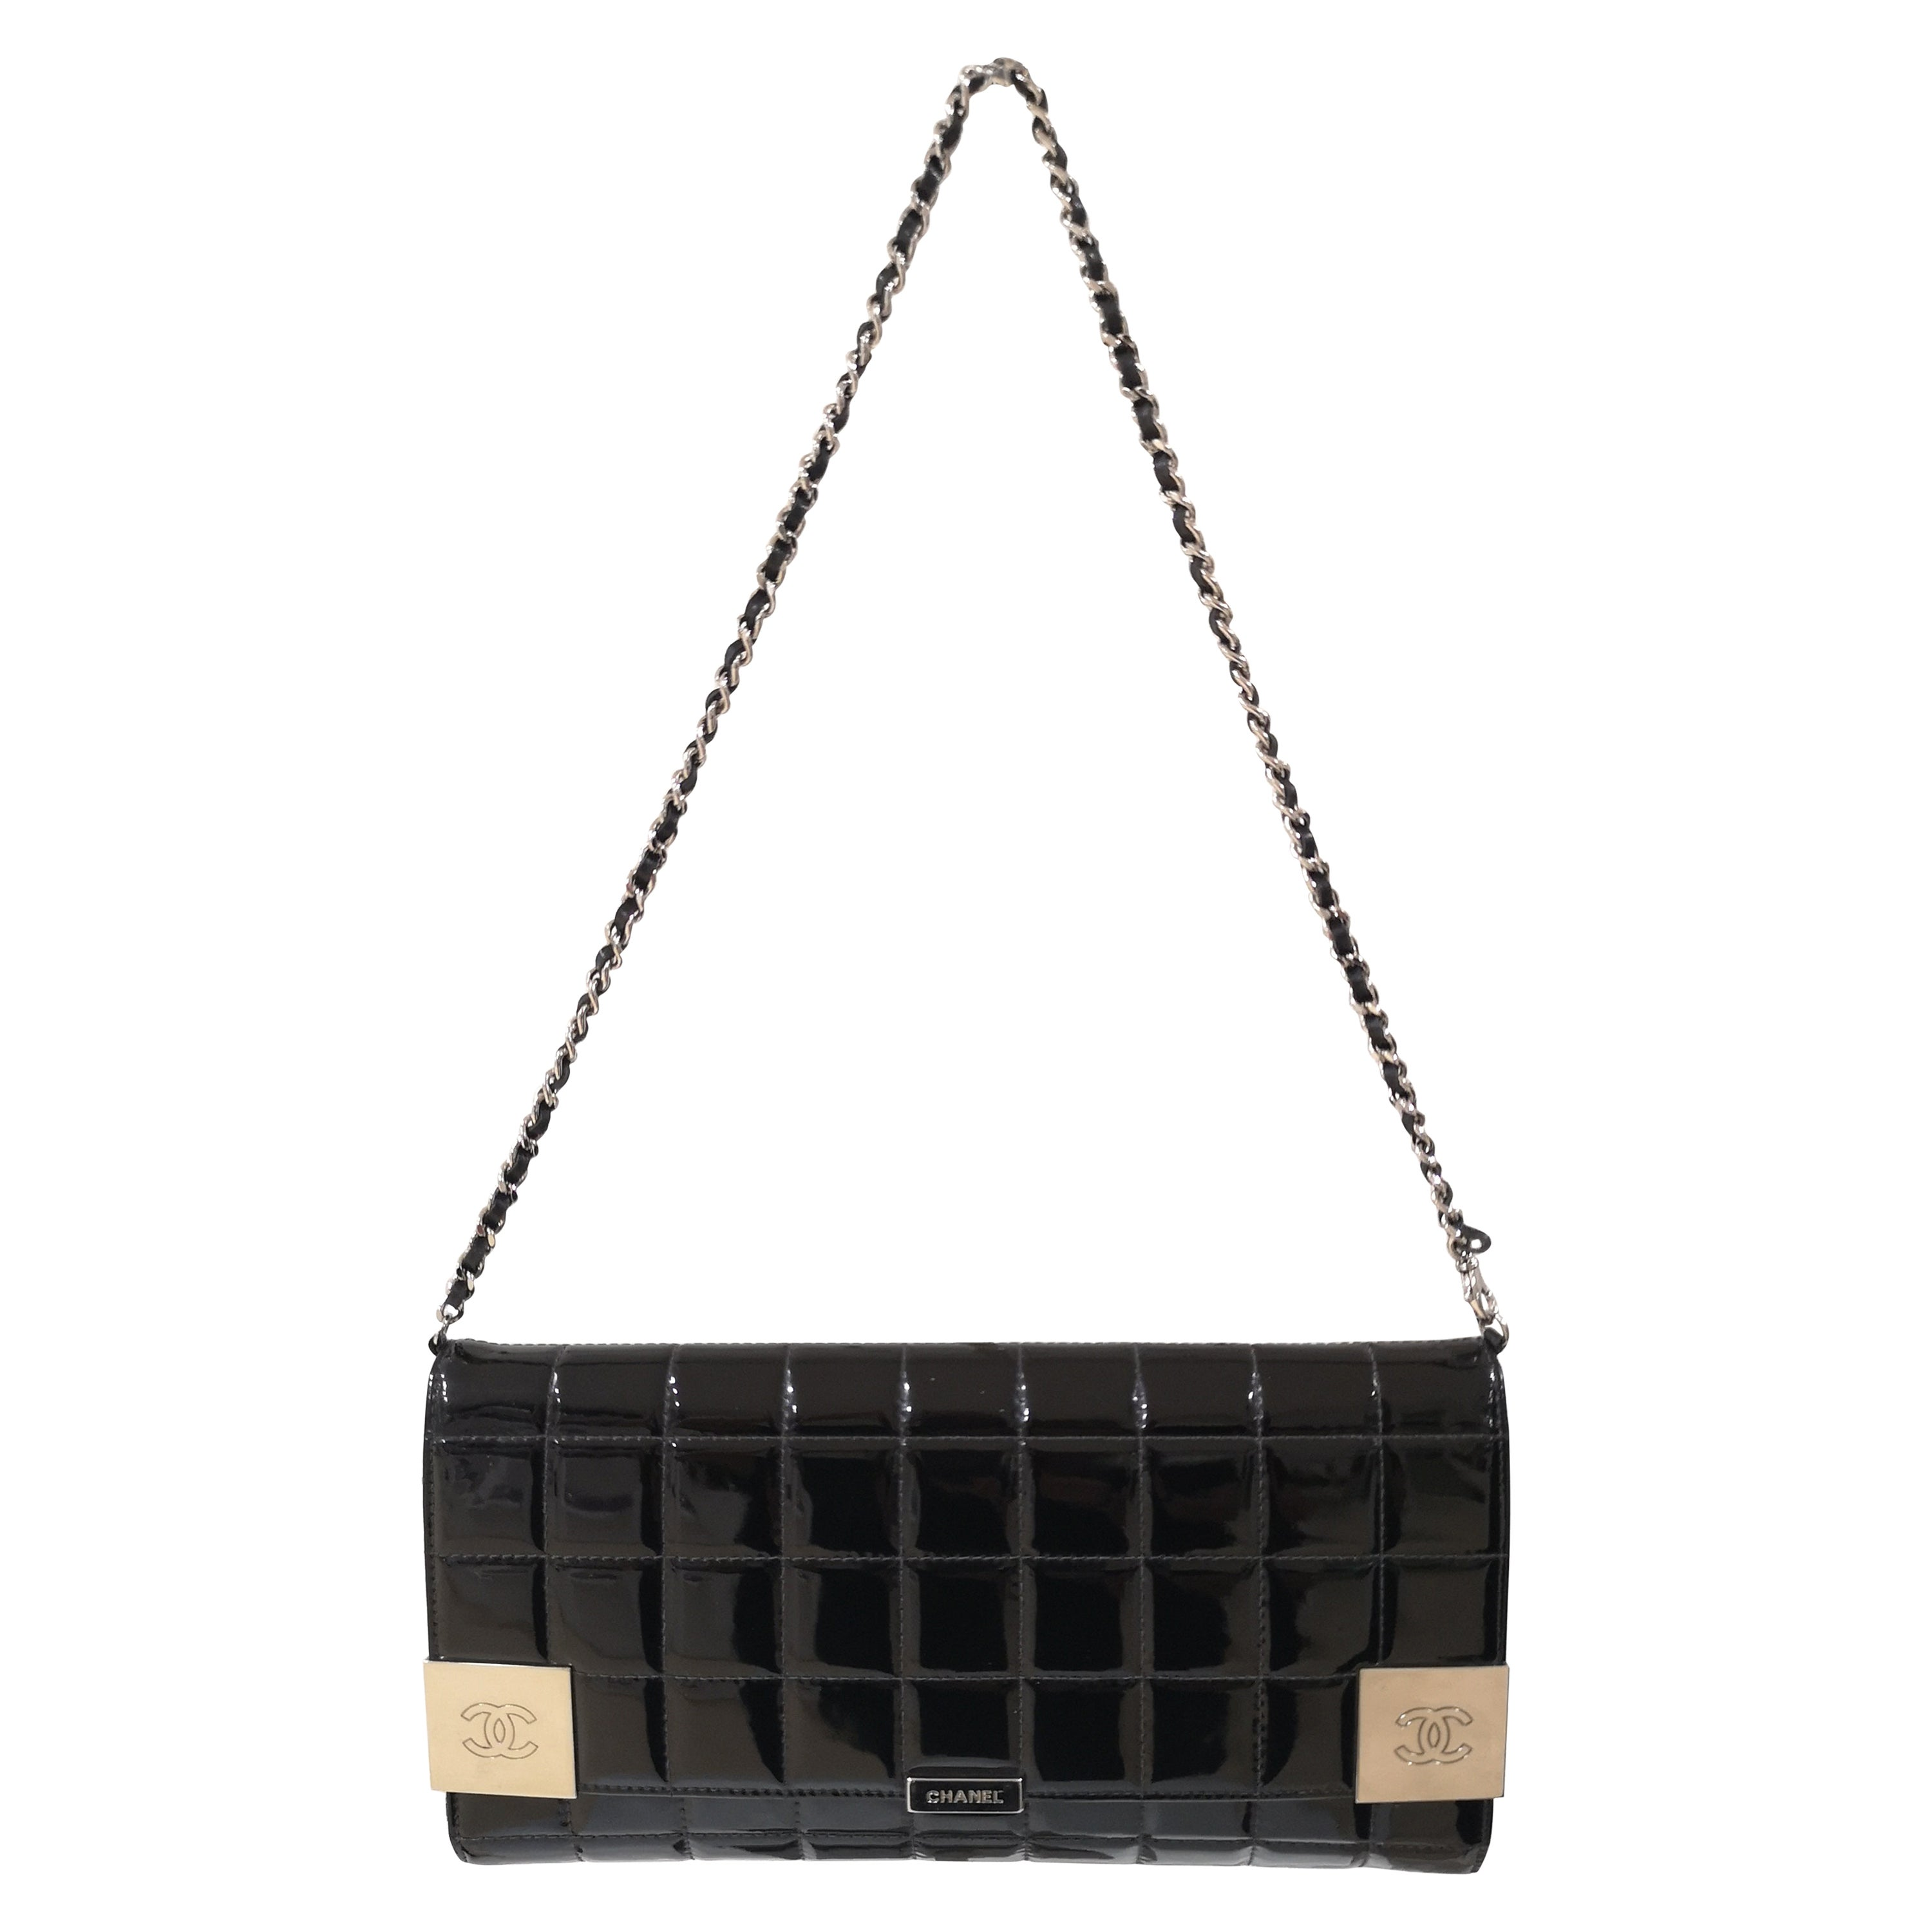 Chanel chocolate black patent leather bag